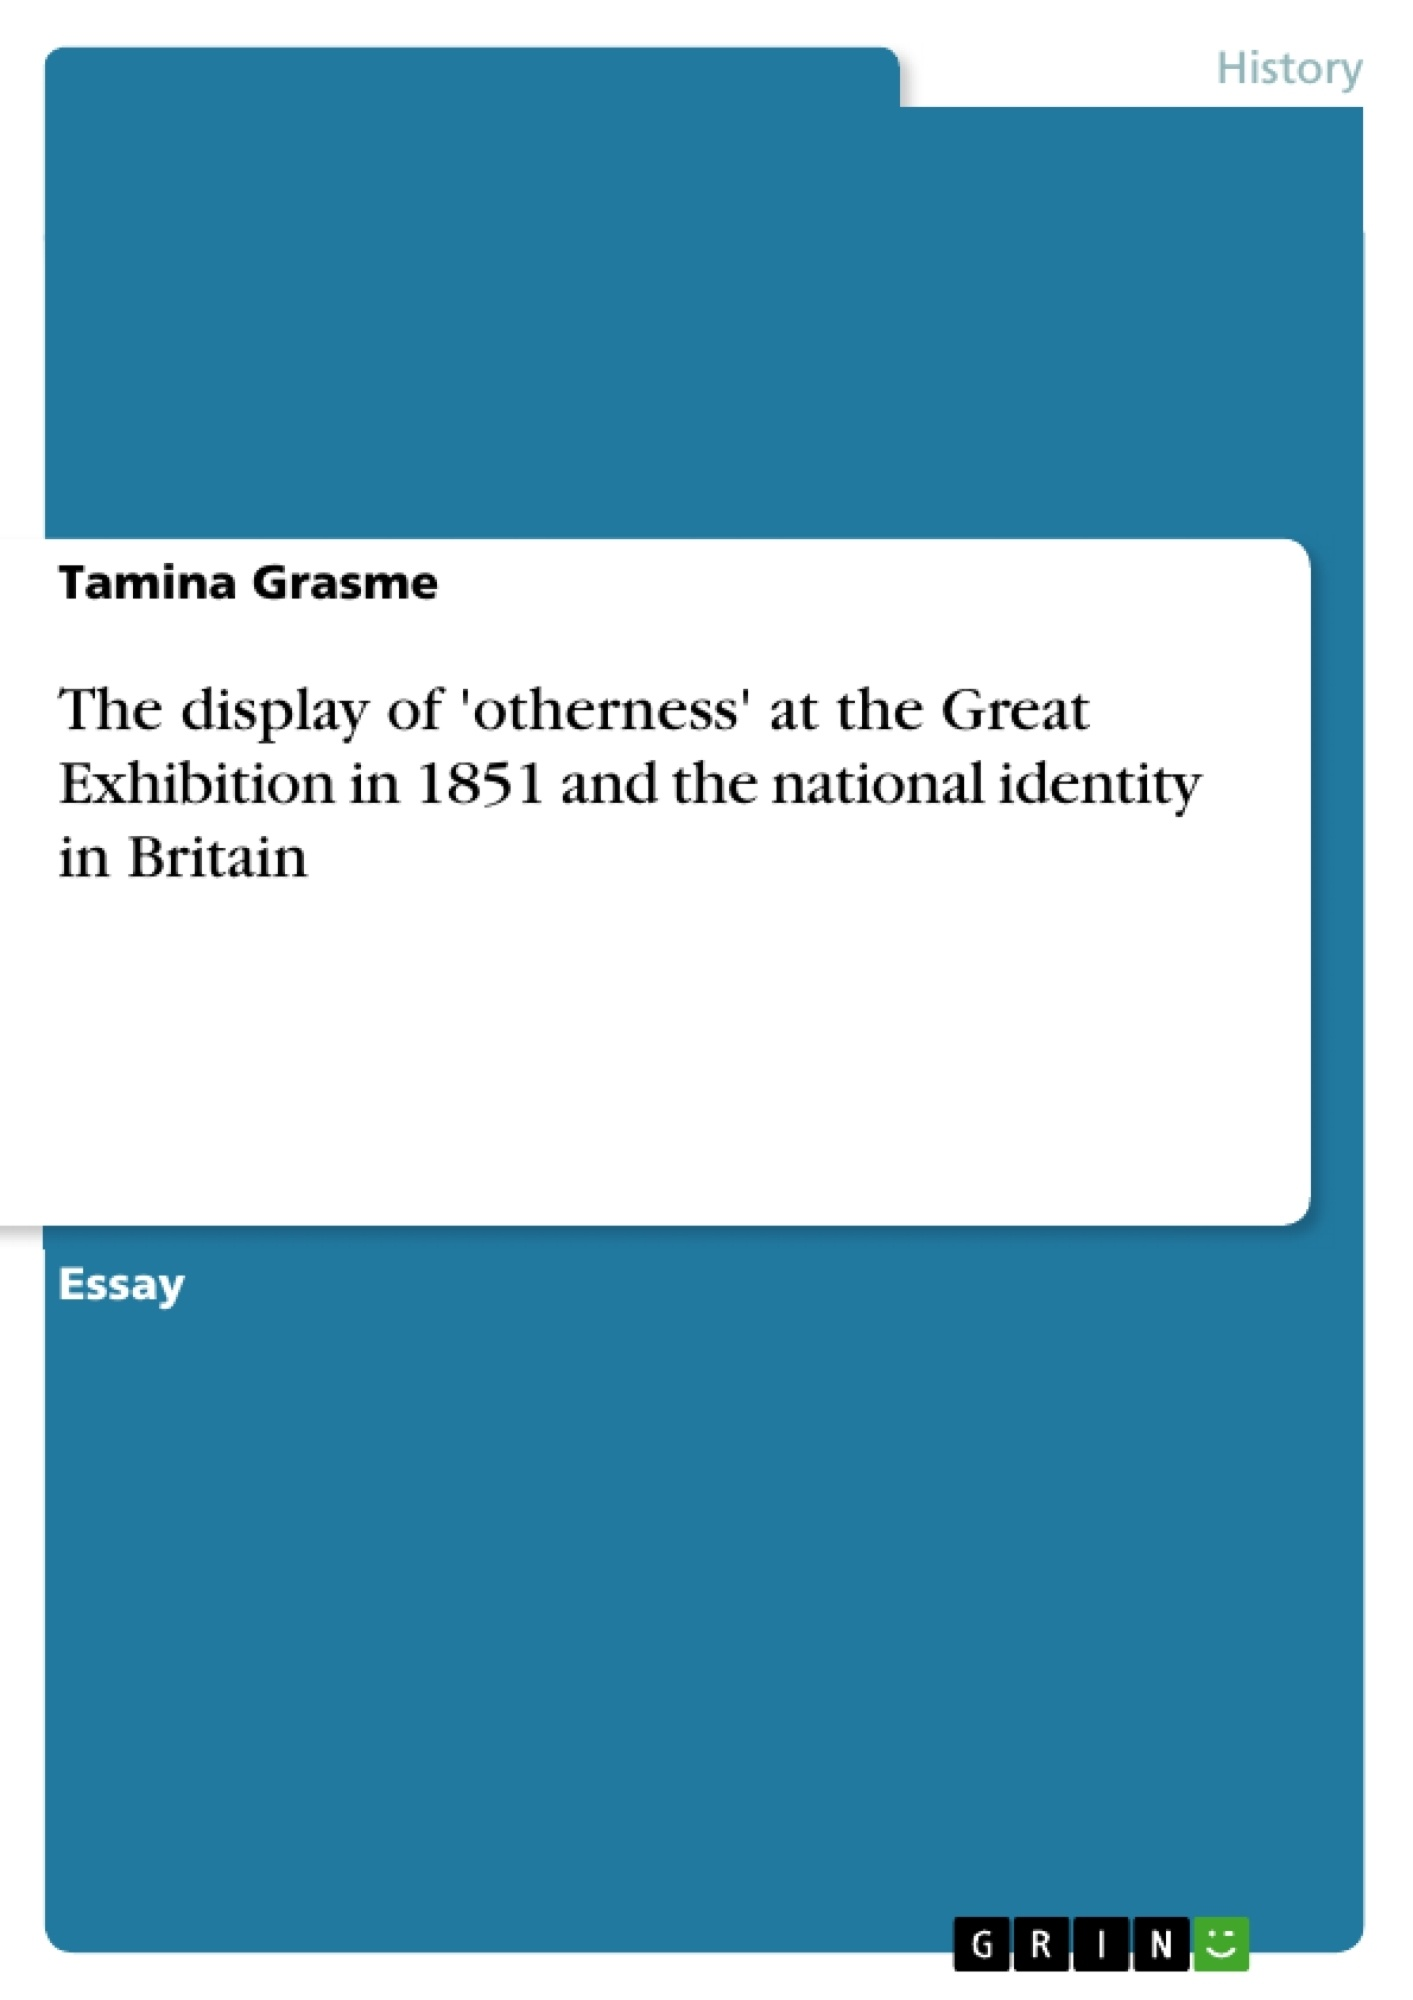 Title: The display of 'otherness' at the Great Exhibition in 1851 and the national identity in Britain